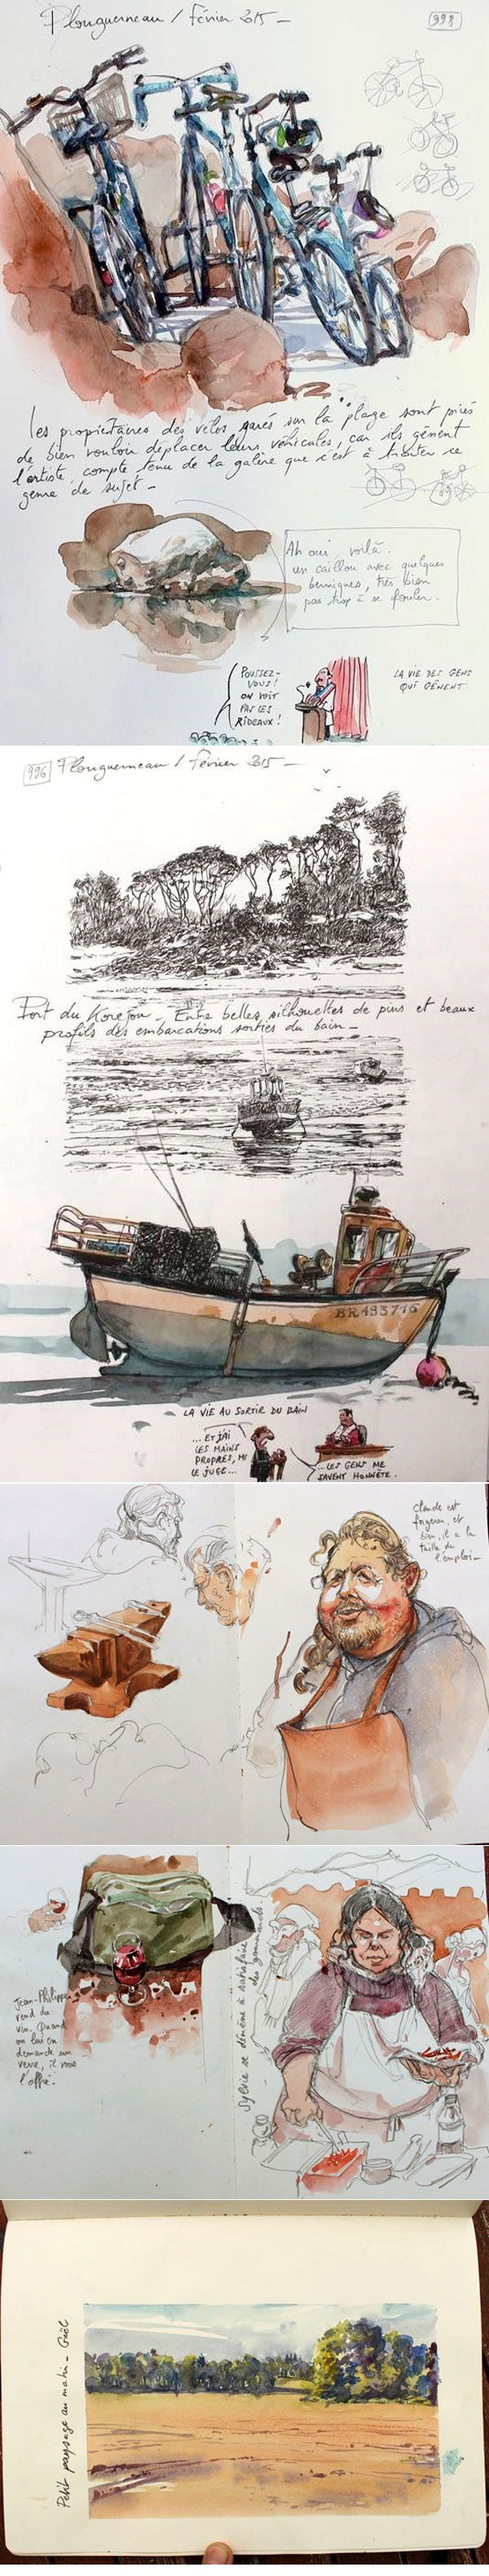 Yann Lesacher #watercolor #sketch http://yal.over-blog.com/page/1